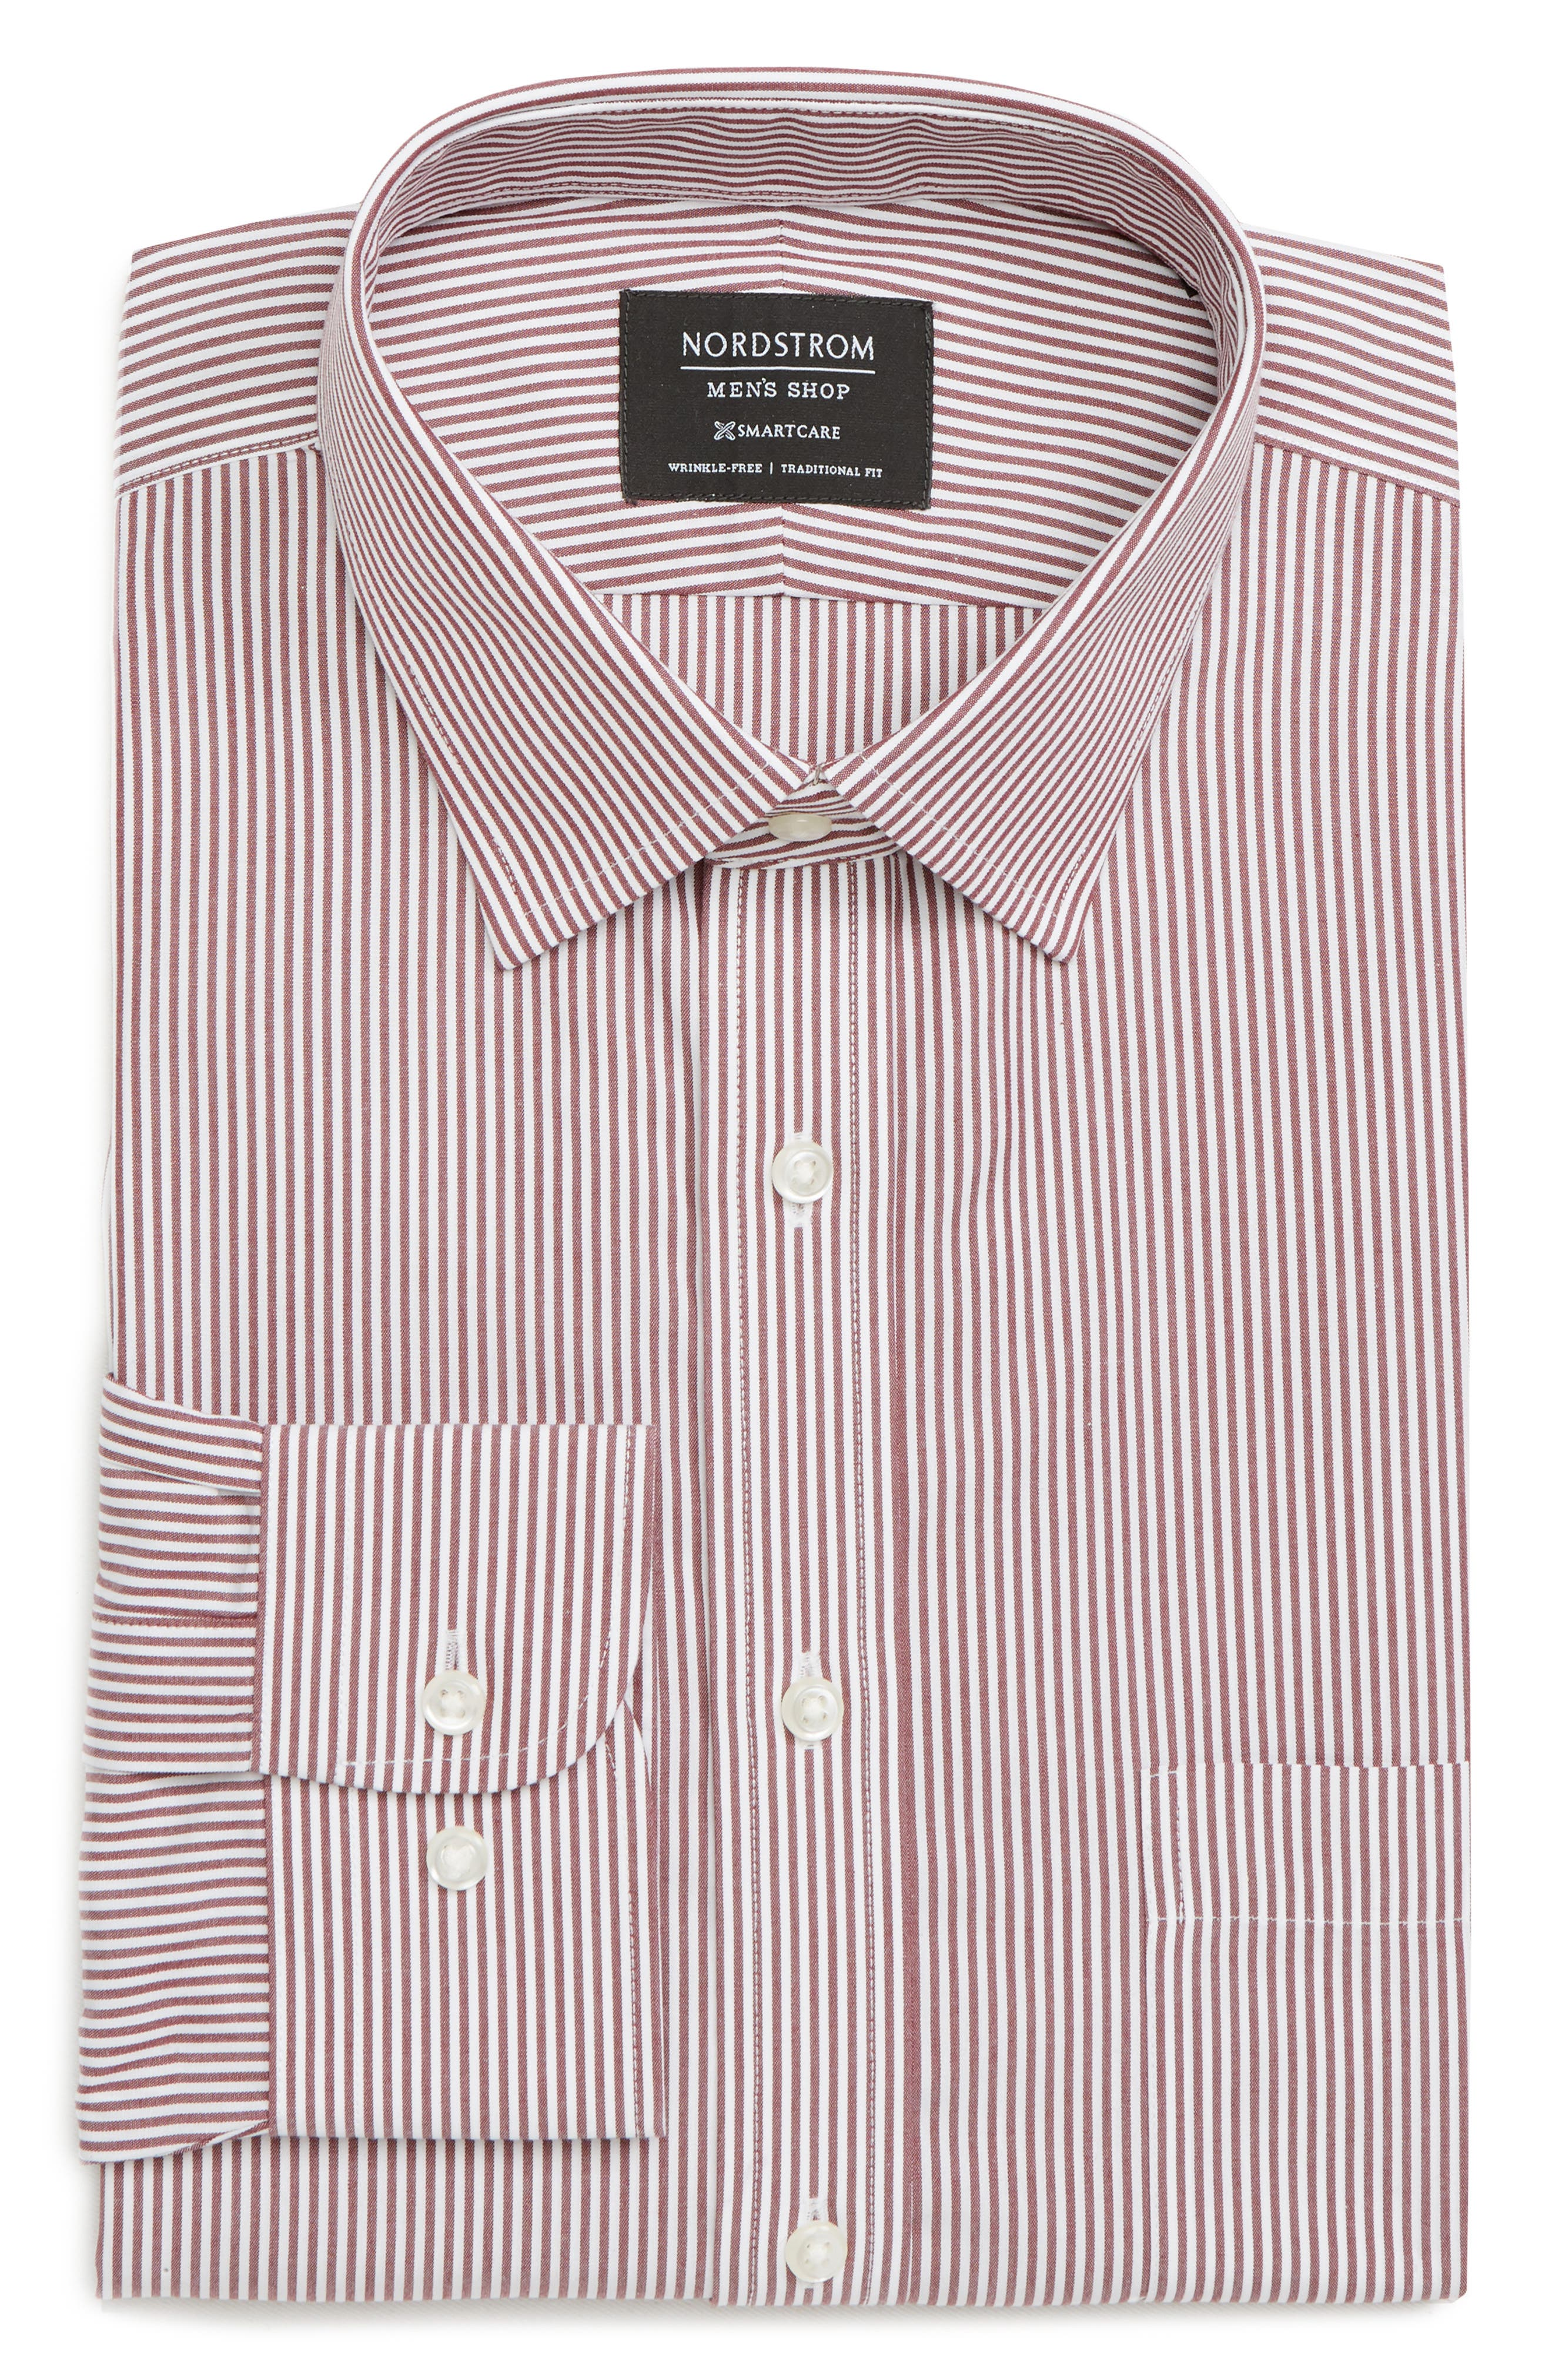 Nordstrom Shop Smartcare(TM) Traditional Fit Stripe Dress Shirt - Red